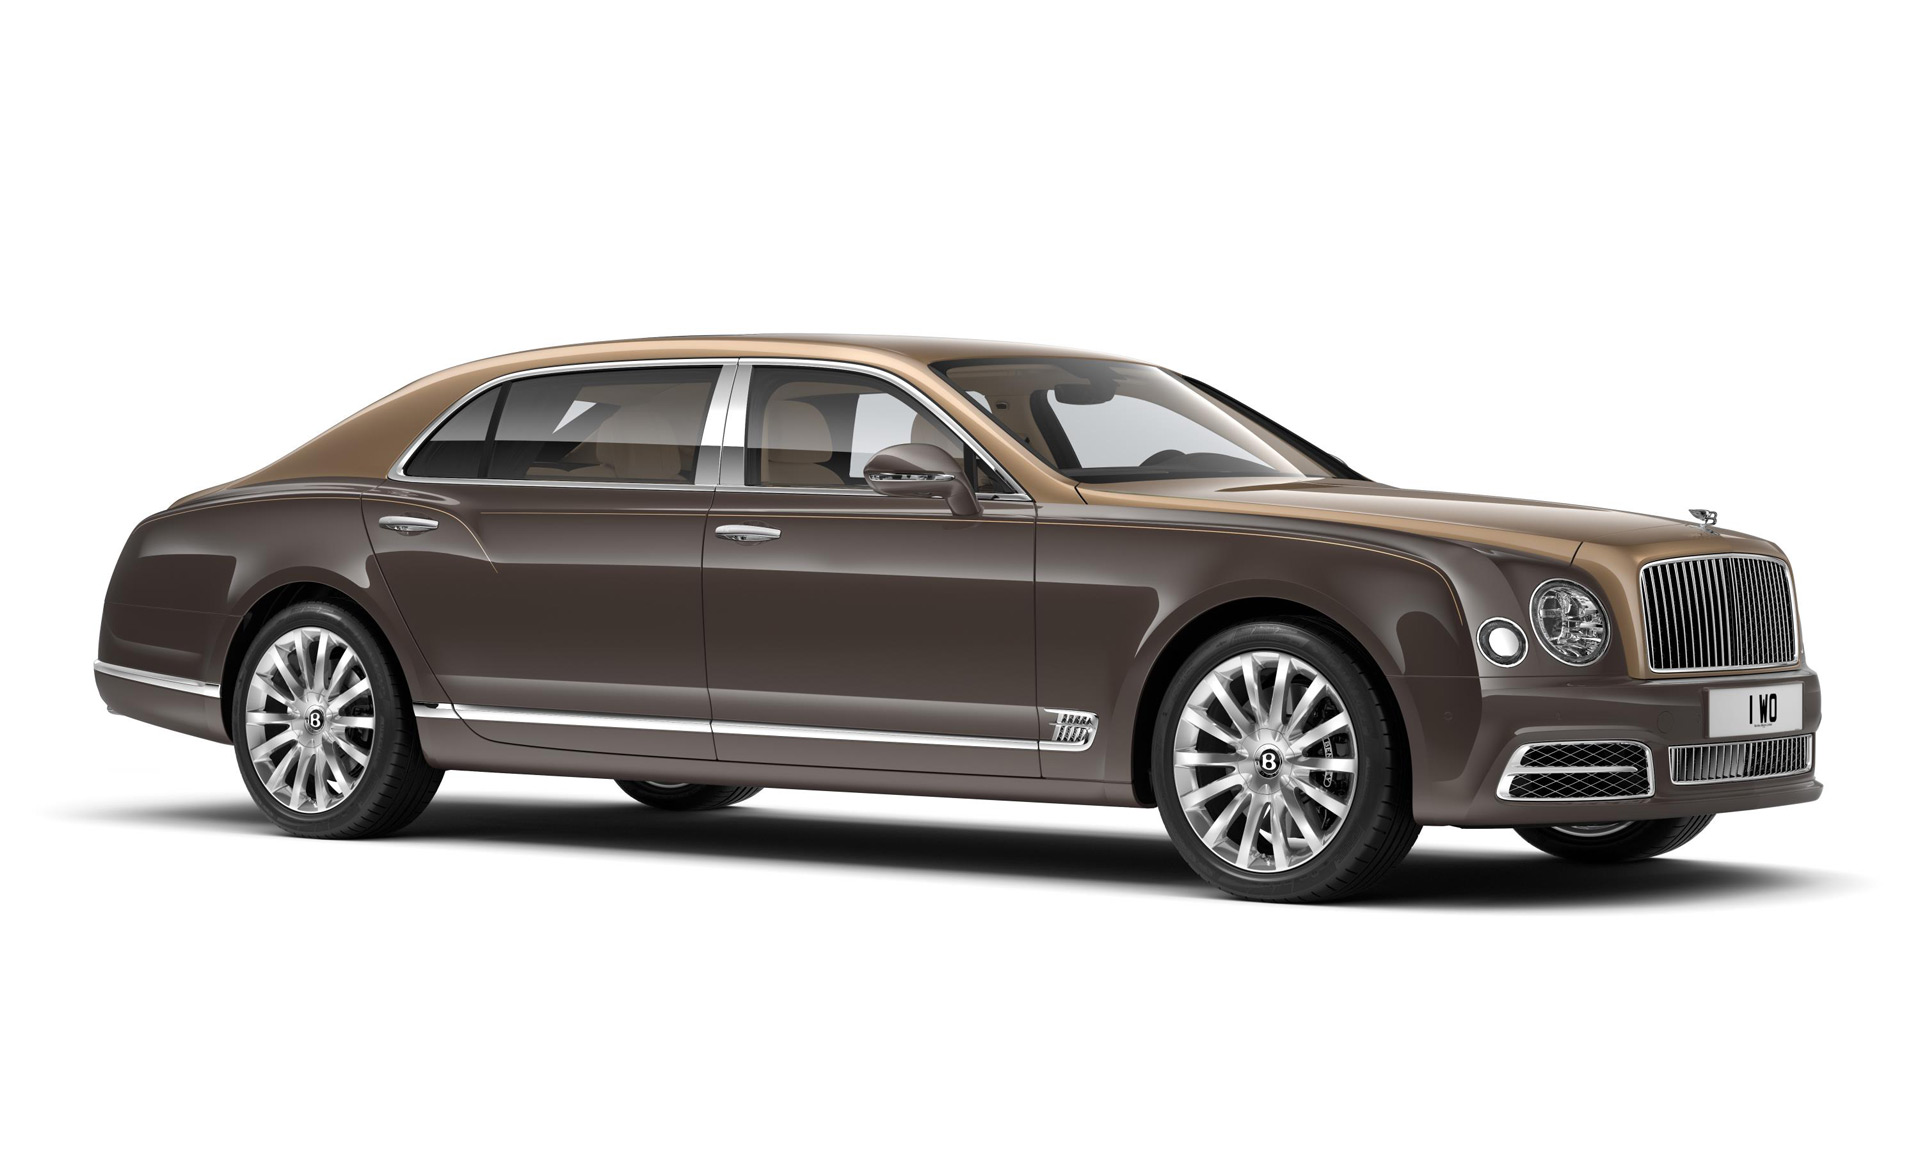 2017 bentley mulsanne first edition debuts at 2016 beijing auto show. Black Bedroom Furniture Sets. Home Design Ideas